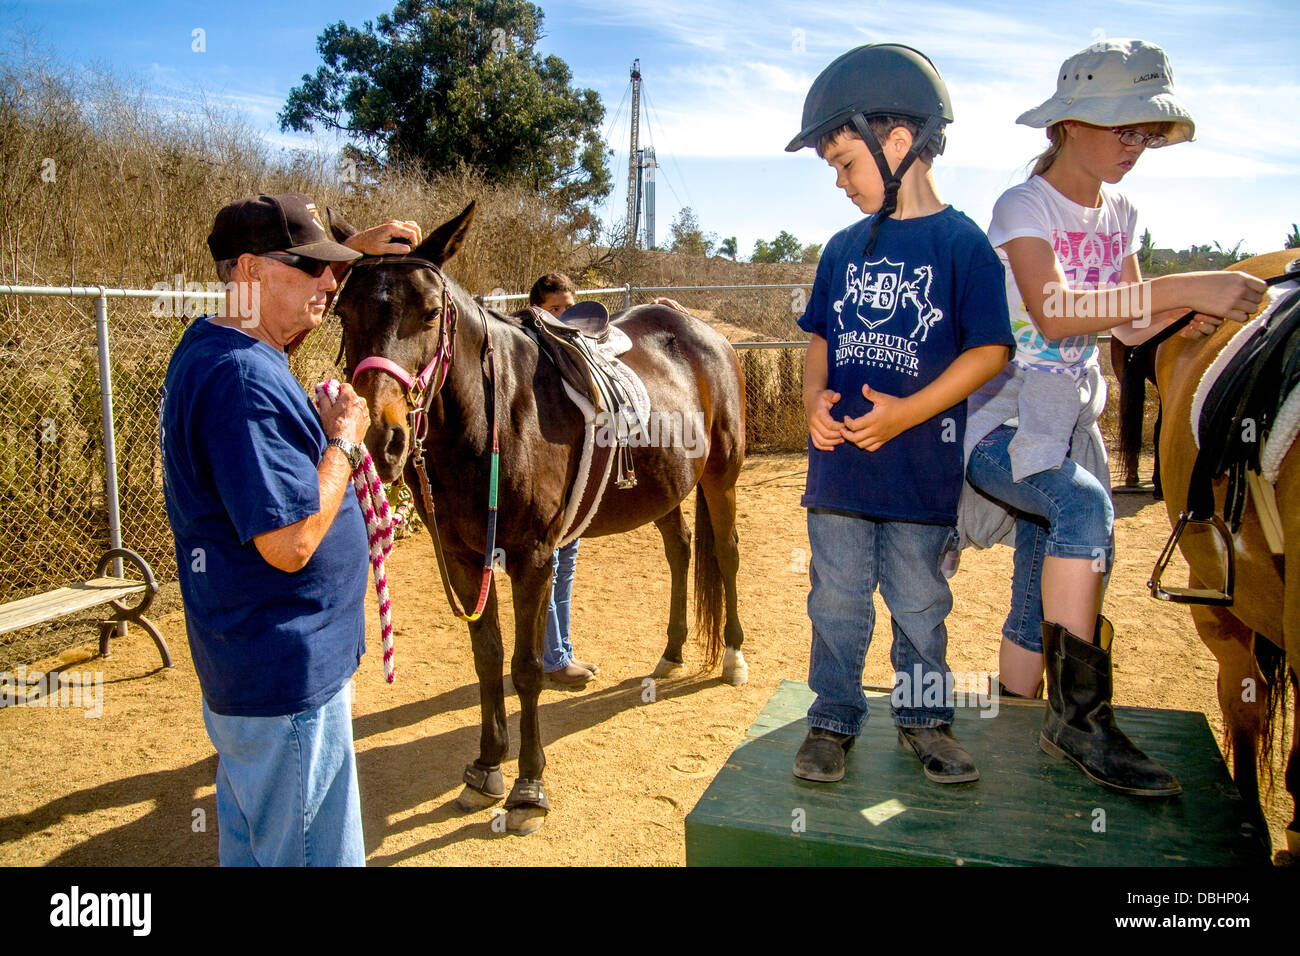 A boy affilicted with Von Wellebrand Disease and high-function autism prepares to ride a horse as part of therapeutic - Stock Image